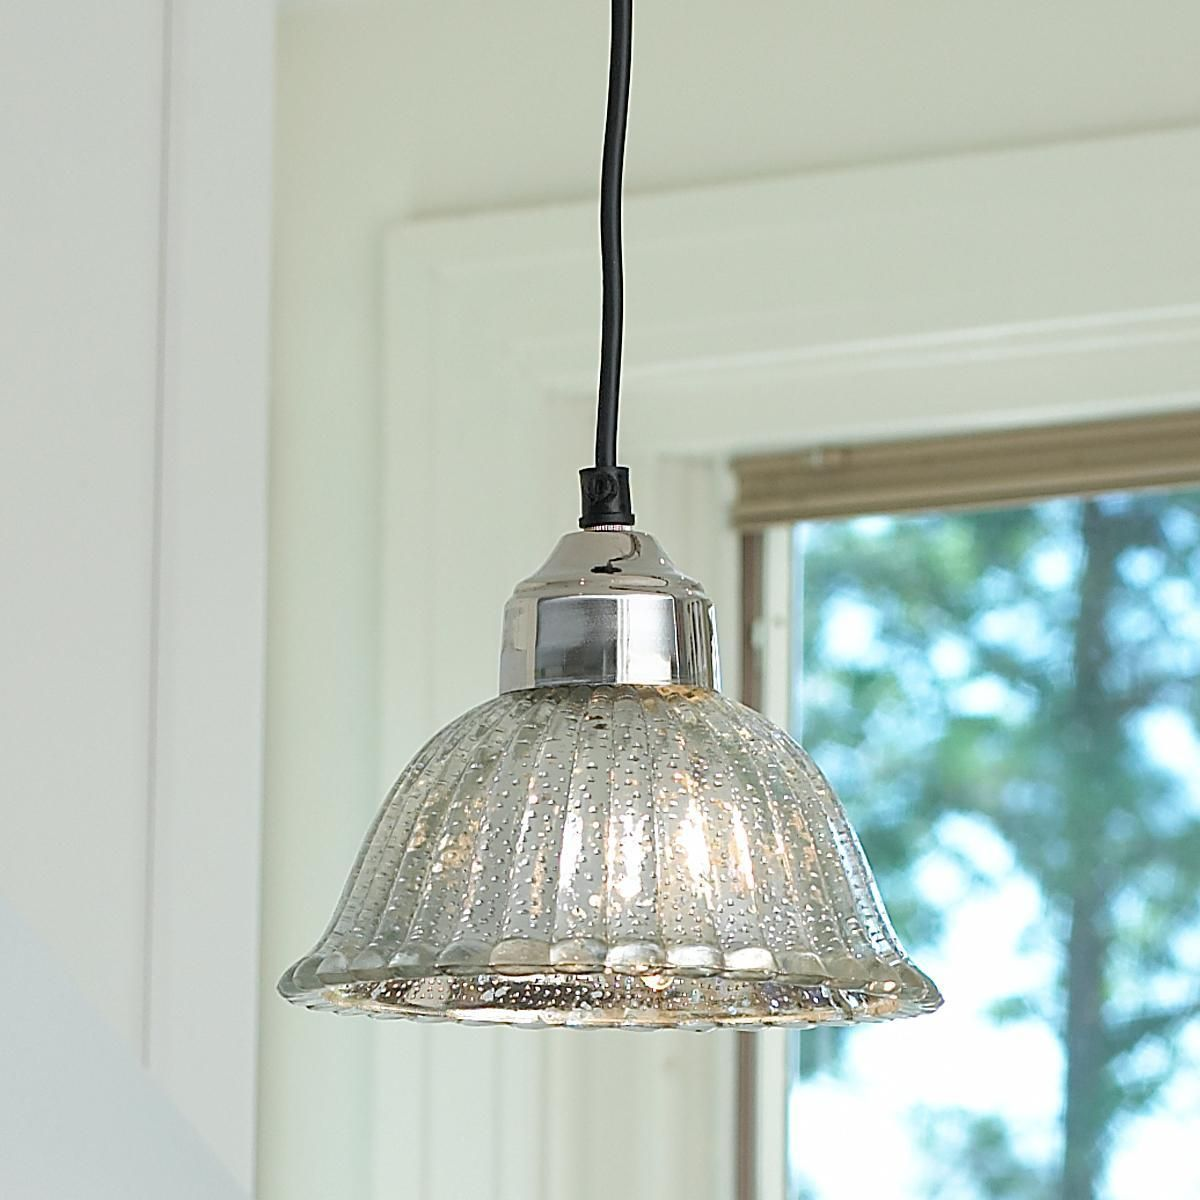 Mercury Glass Pendant Light Fixture Enchanting Ribbed Dome Mercury Glass Shade Pendant Light  Pinterest  Mercury Review